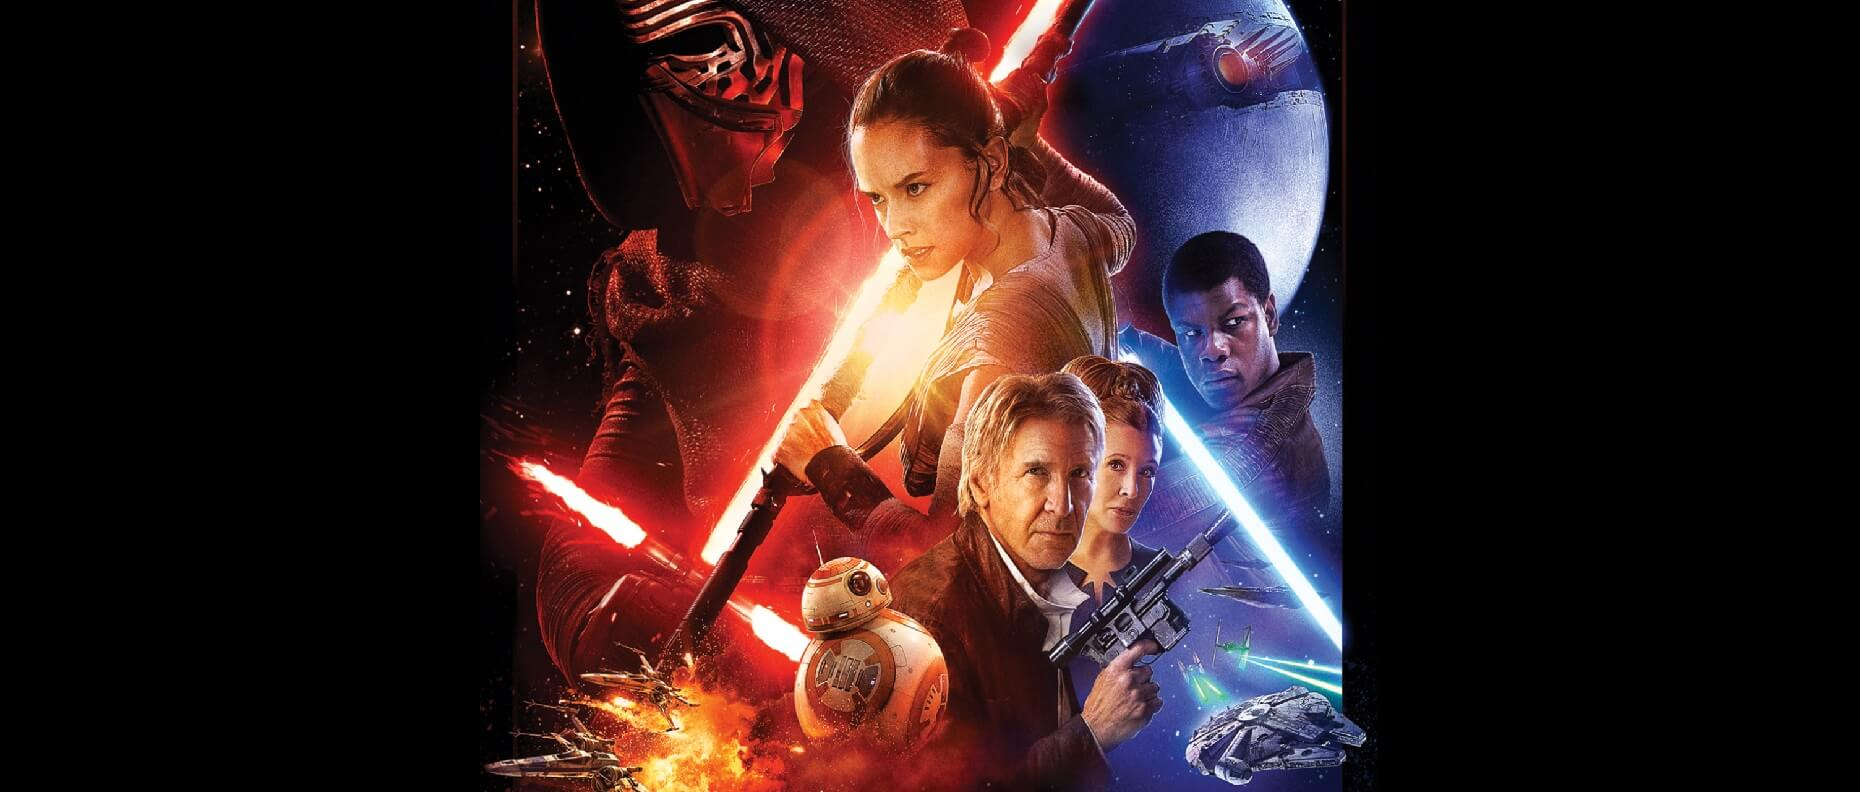 Star Wars review